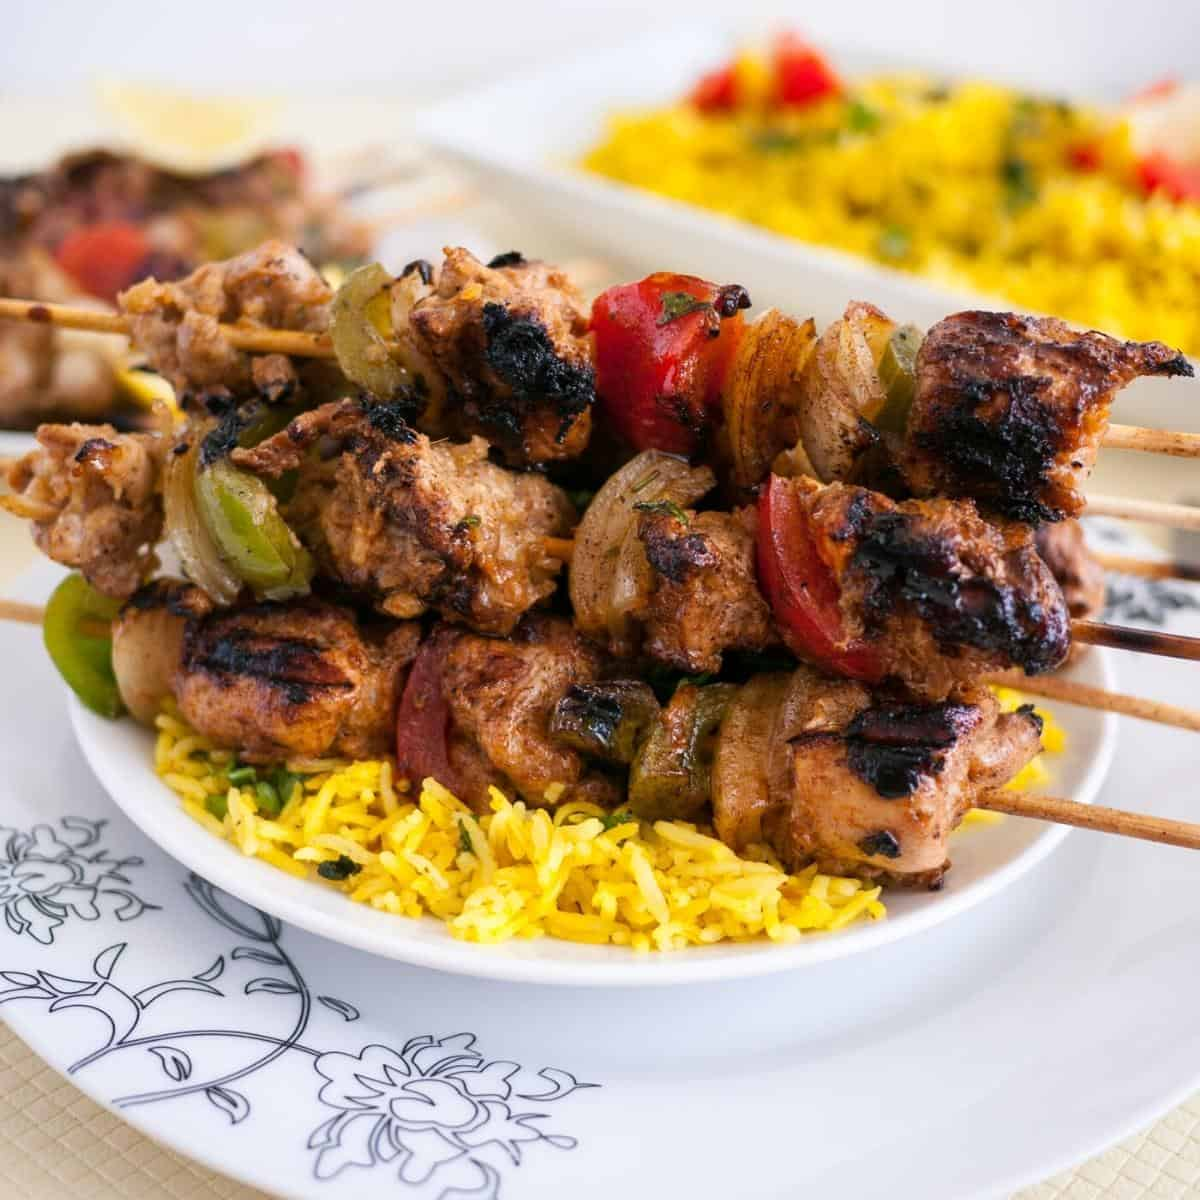 A plate with rice and chicken and veggies on skewers.